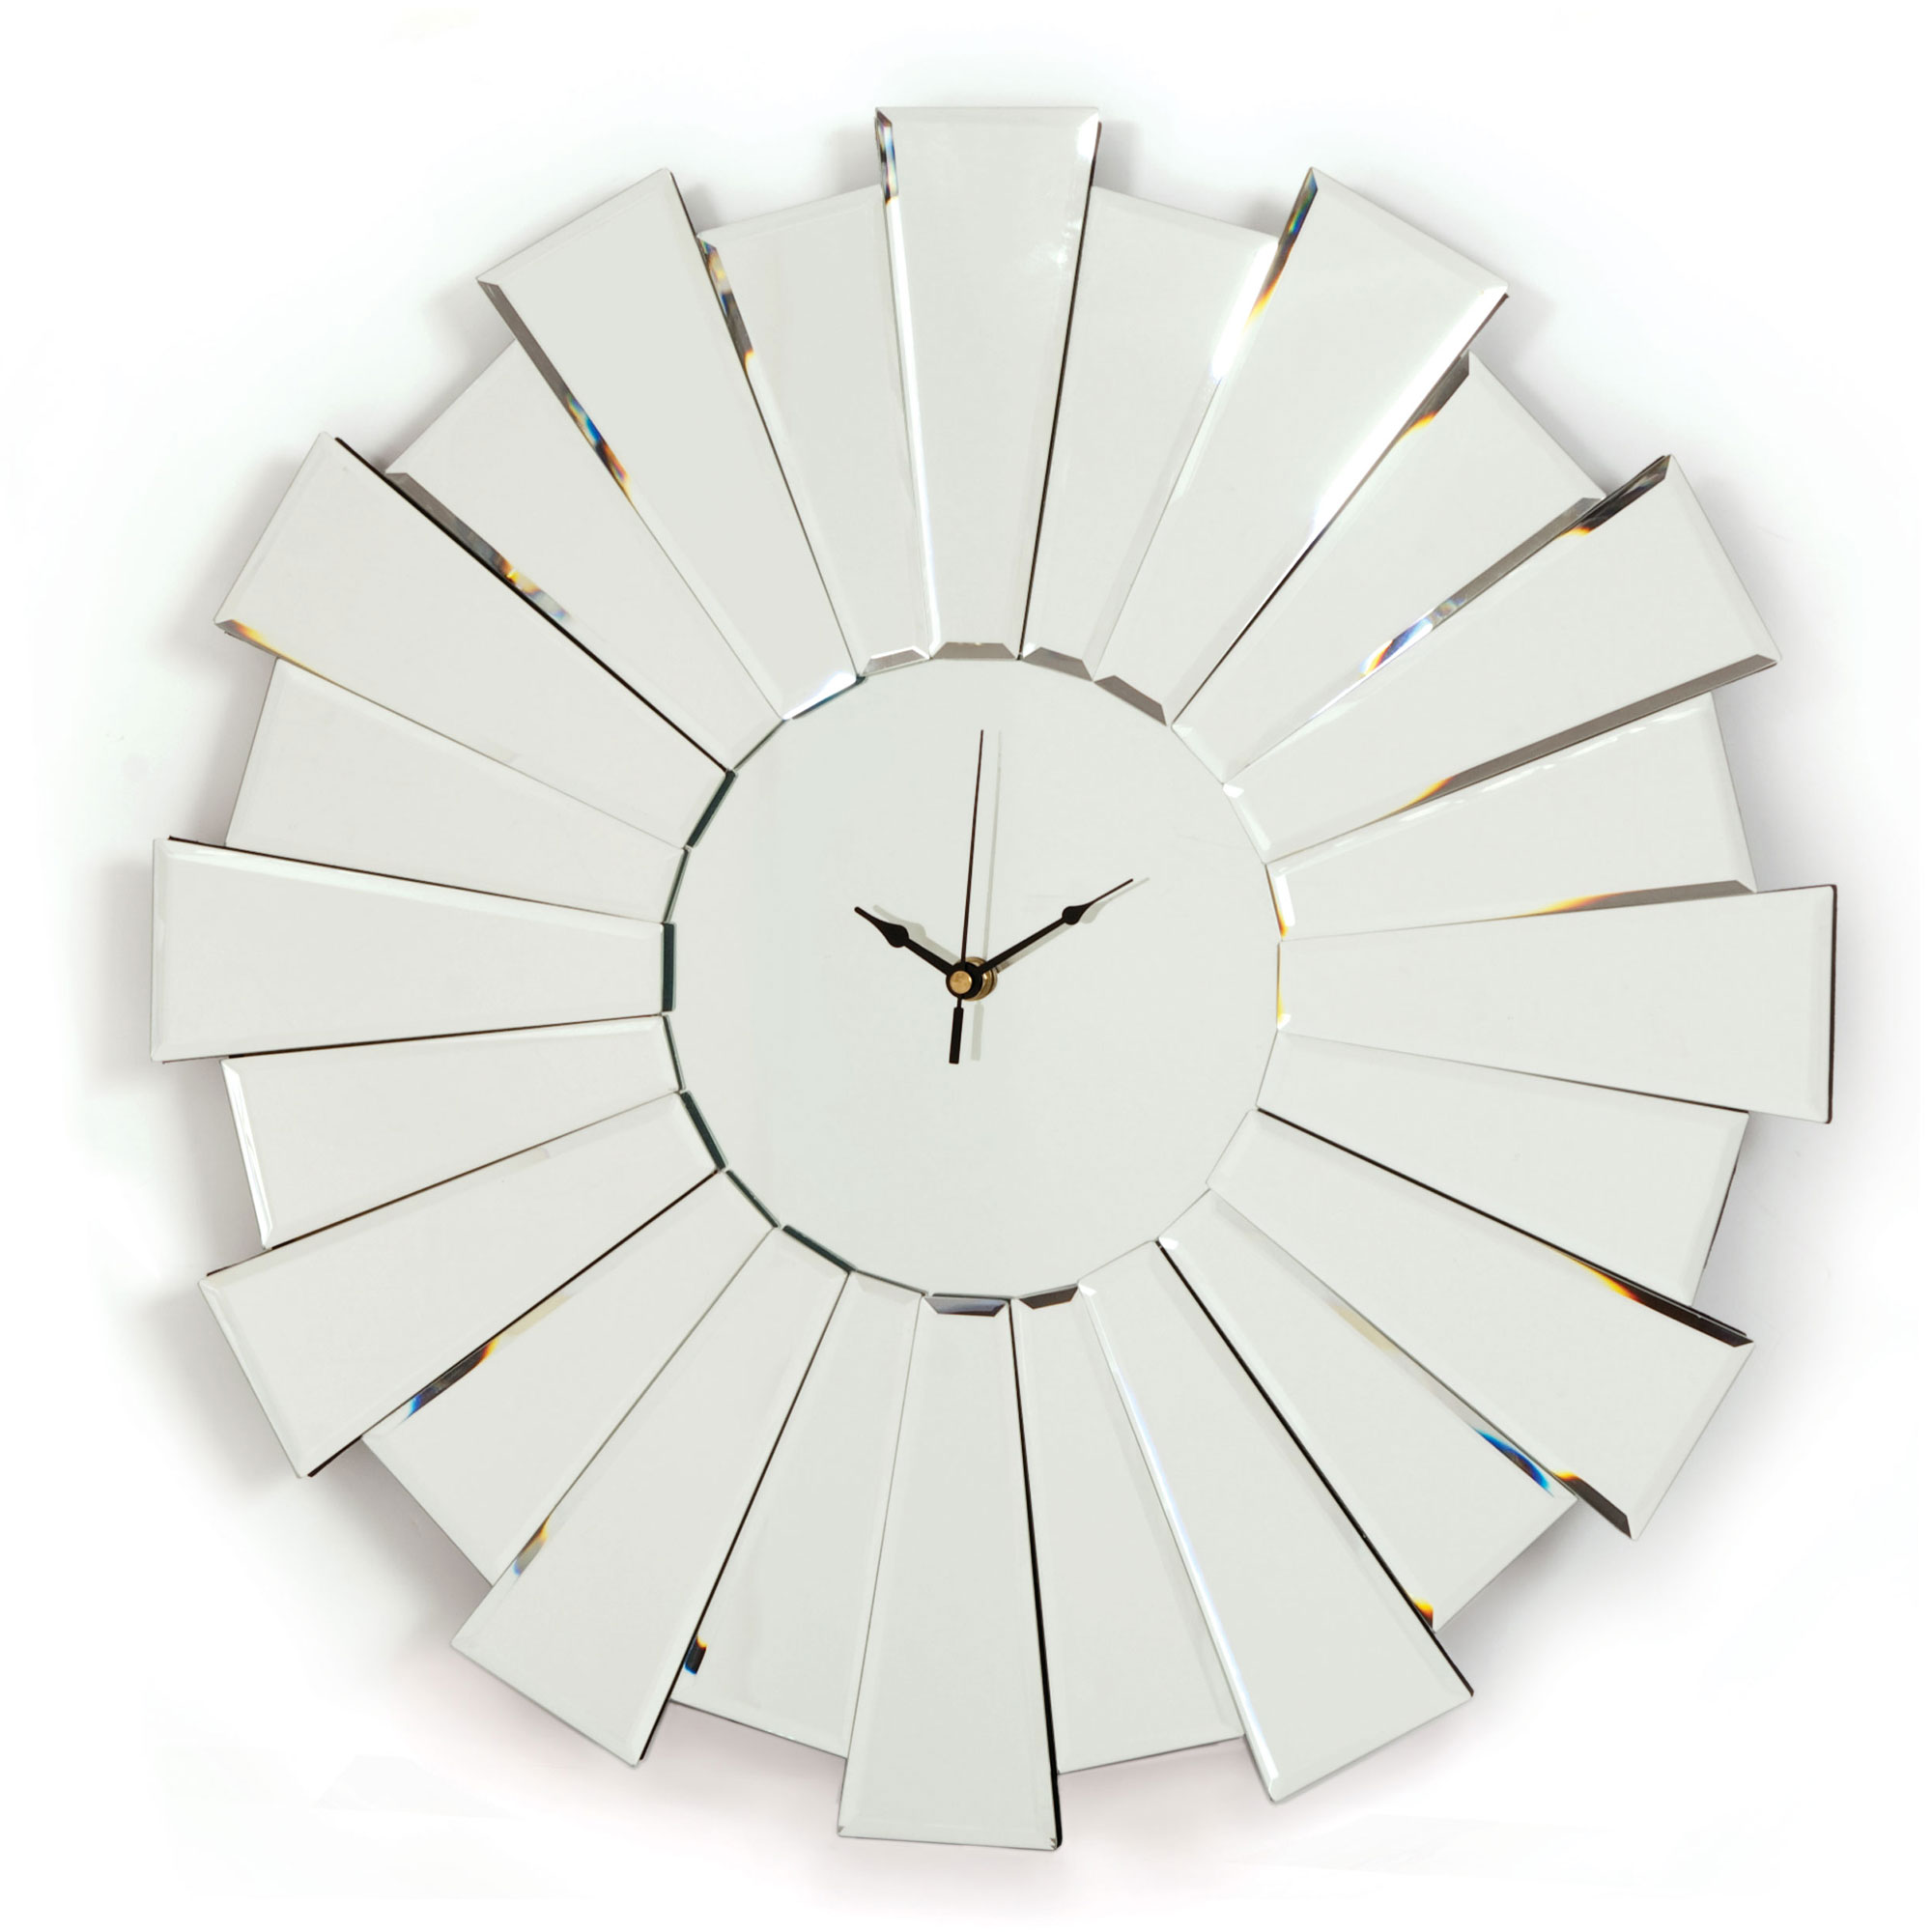 Starburst Art Deco Mirrored Clock For Sale In The UK Arrowfile